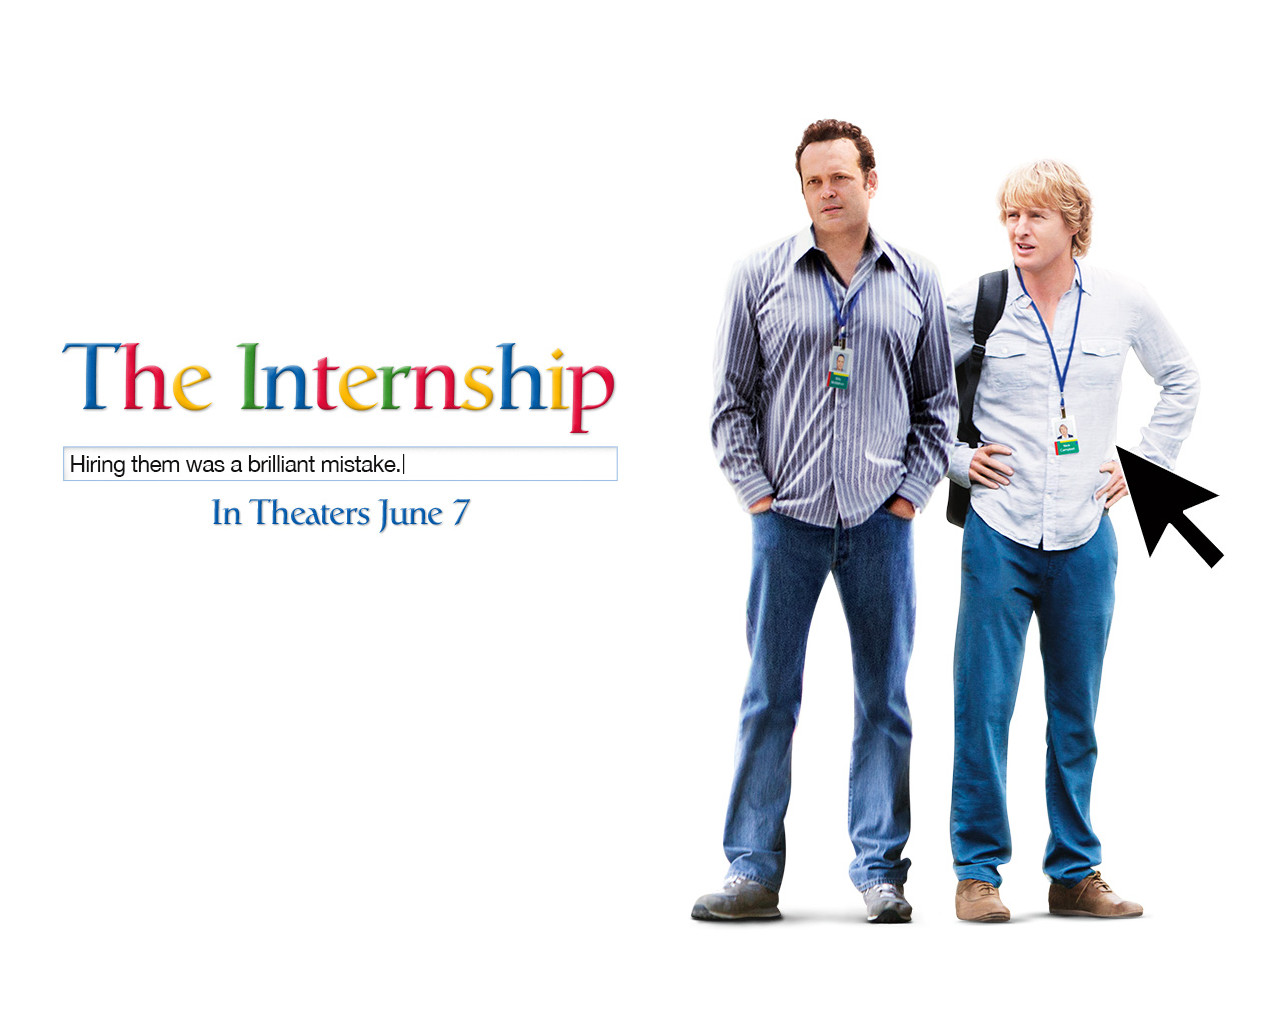 The Internship - A Movie Showing Google's Good Side